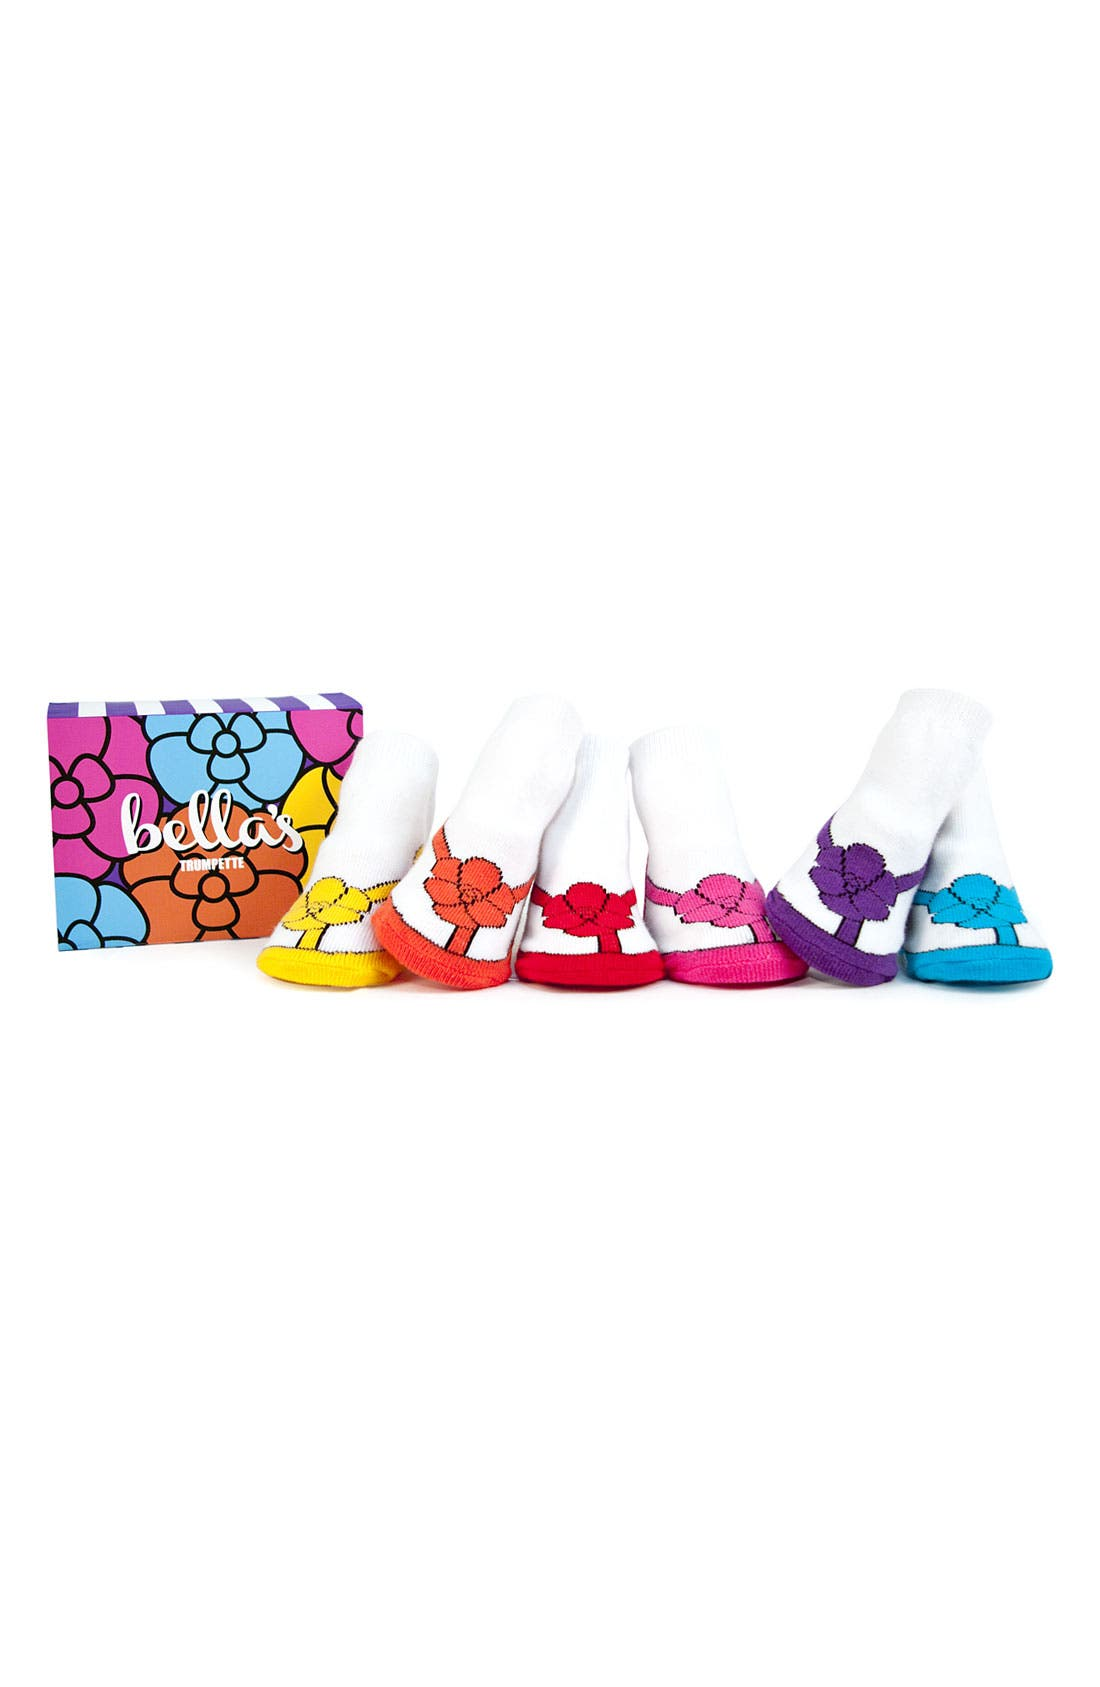 Main Image - Trumpette 'Bella's' Socks Gift Set (Baby Girls)